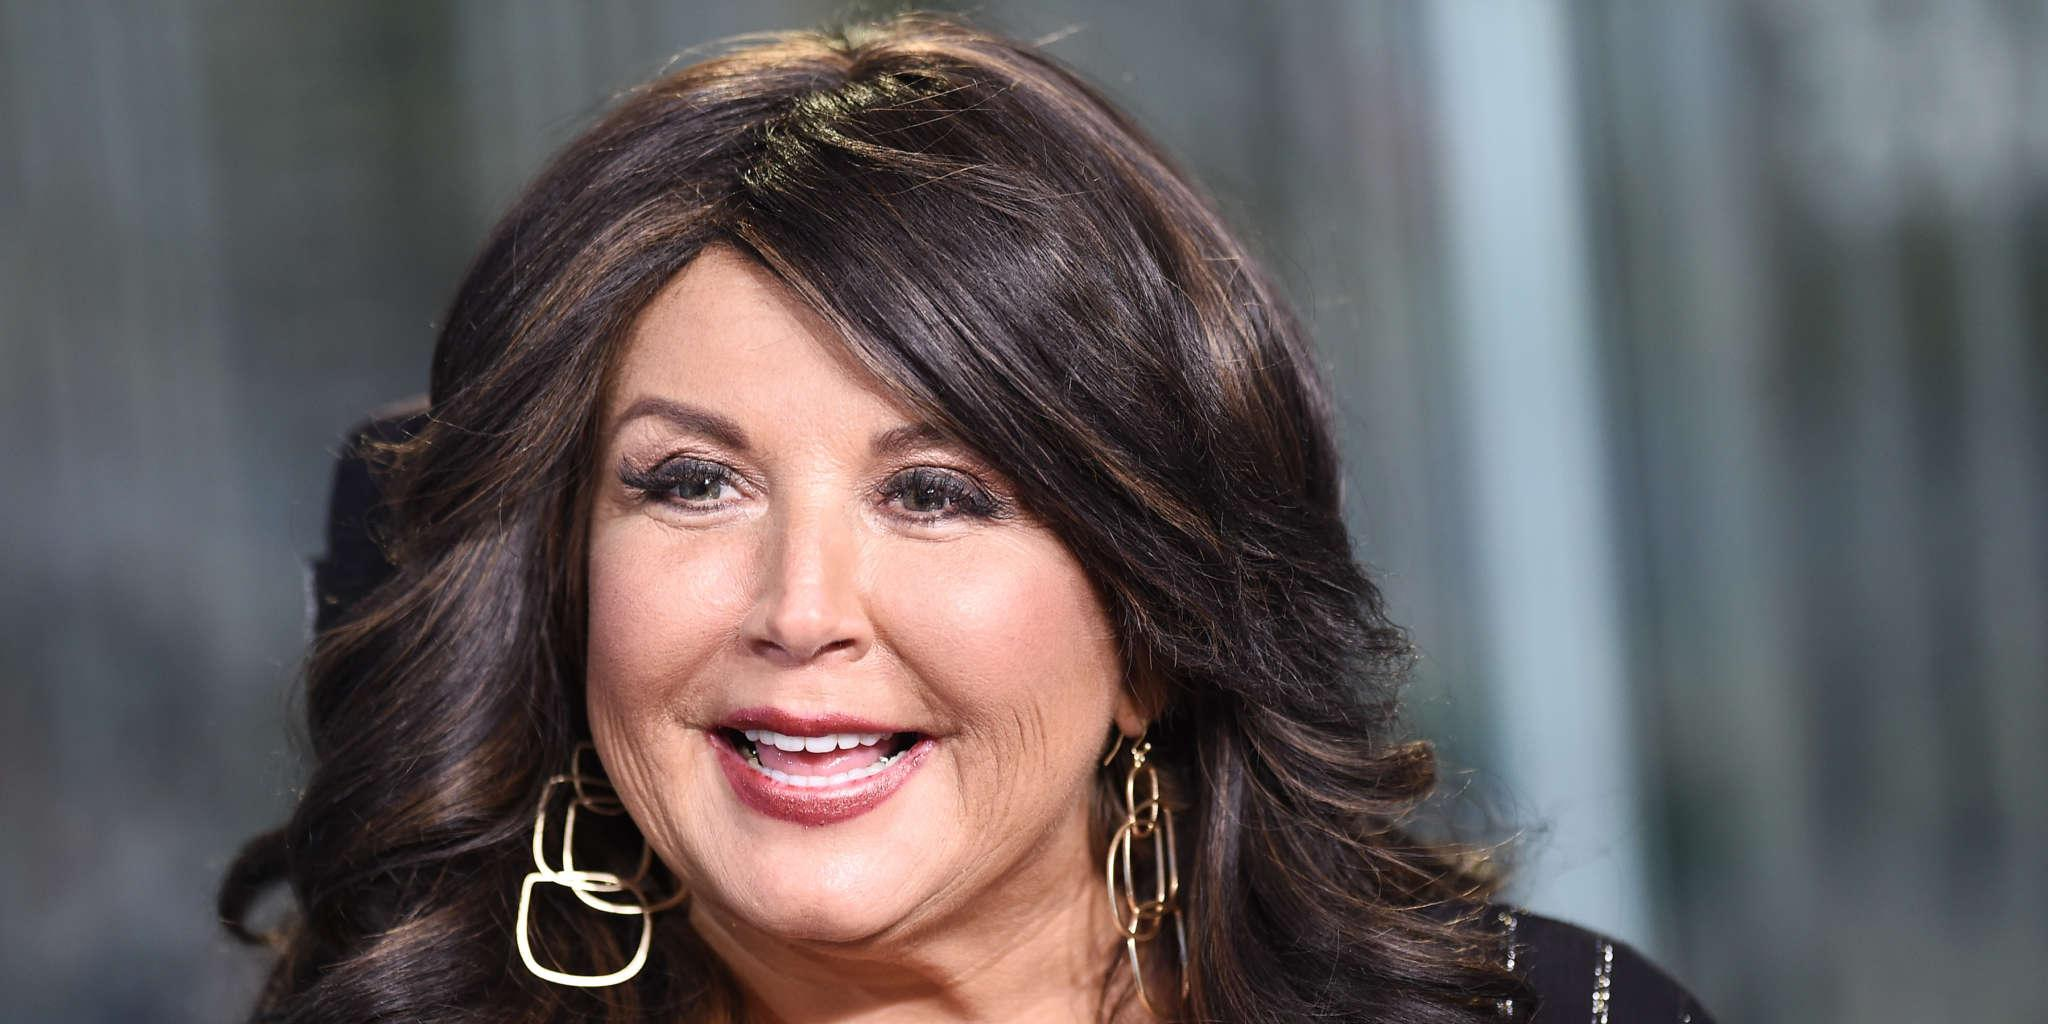 Abby Lee Miller Gets A Facelift And Documents The Process For 'The Doctors!'